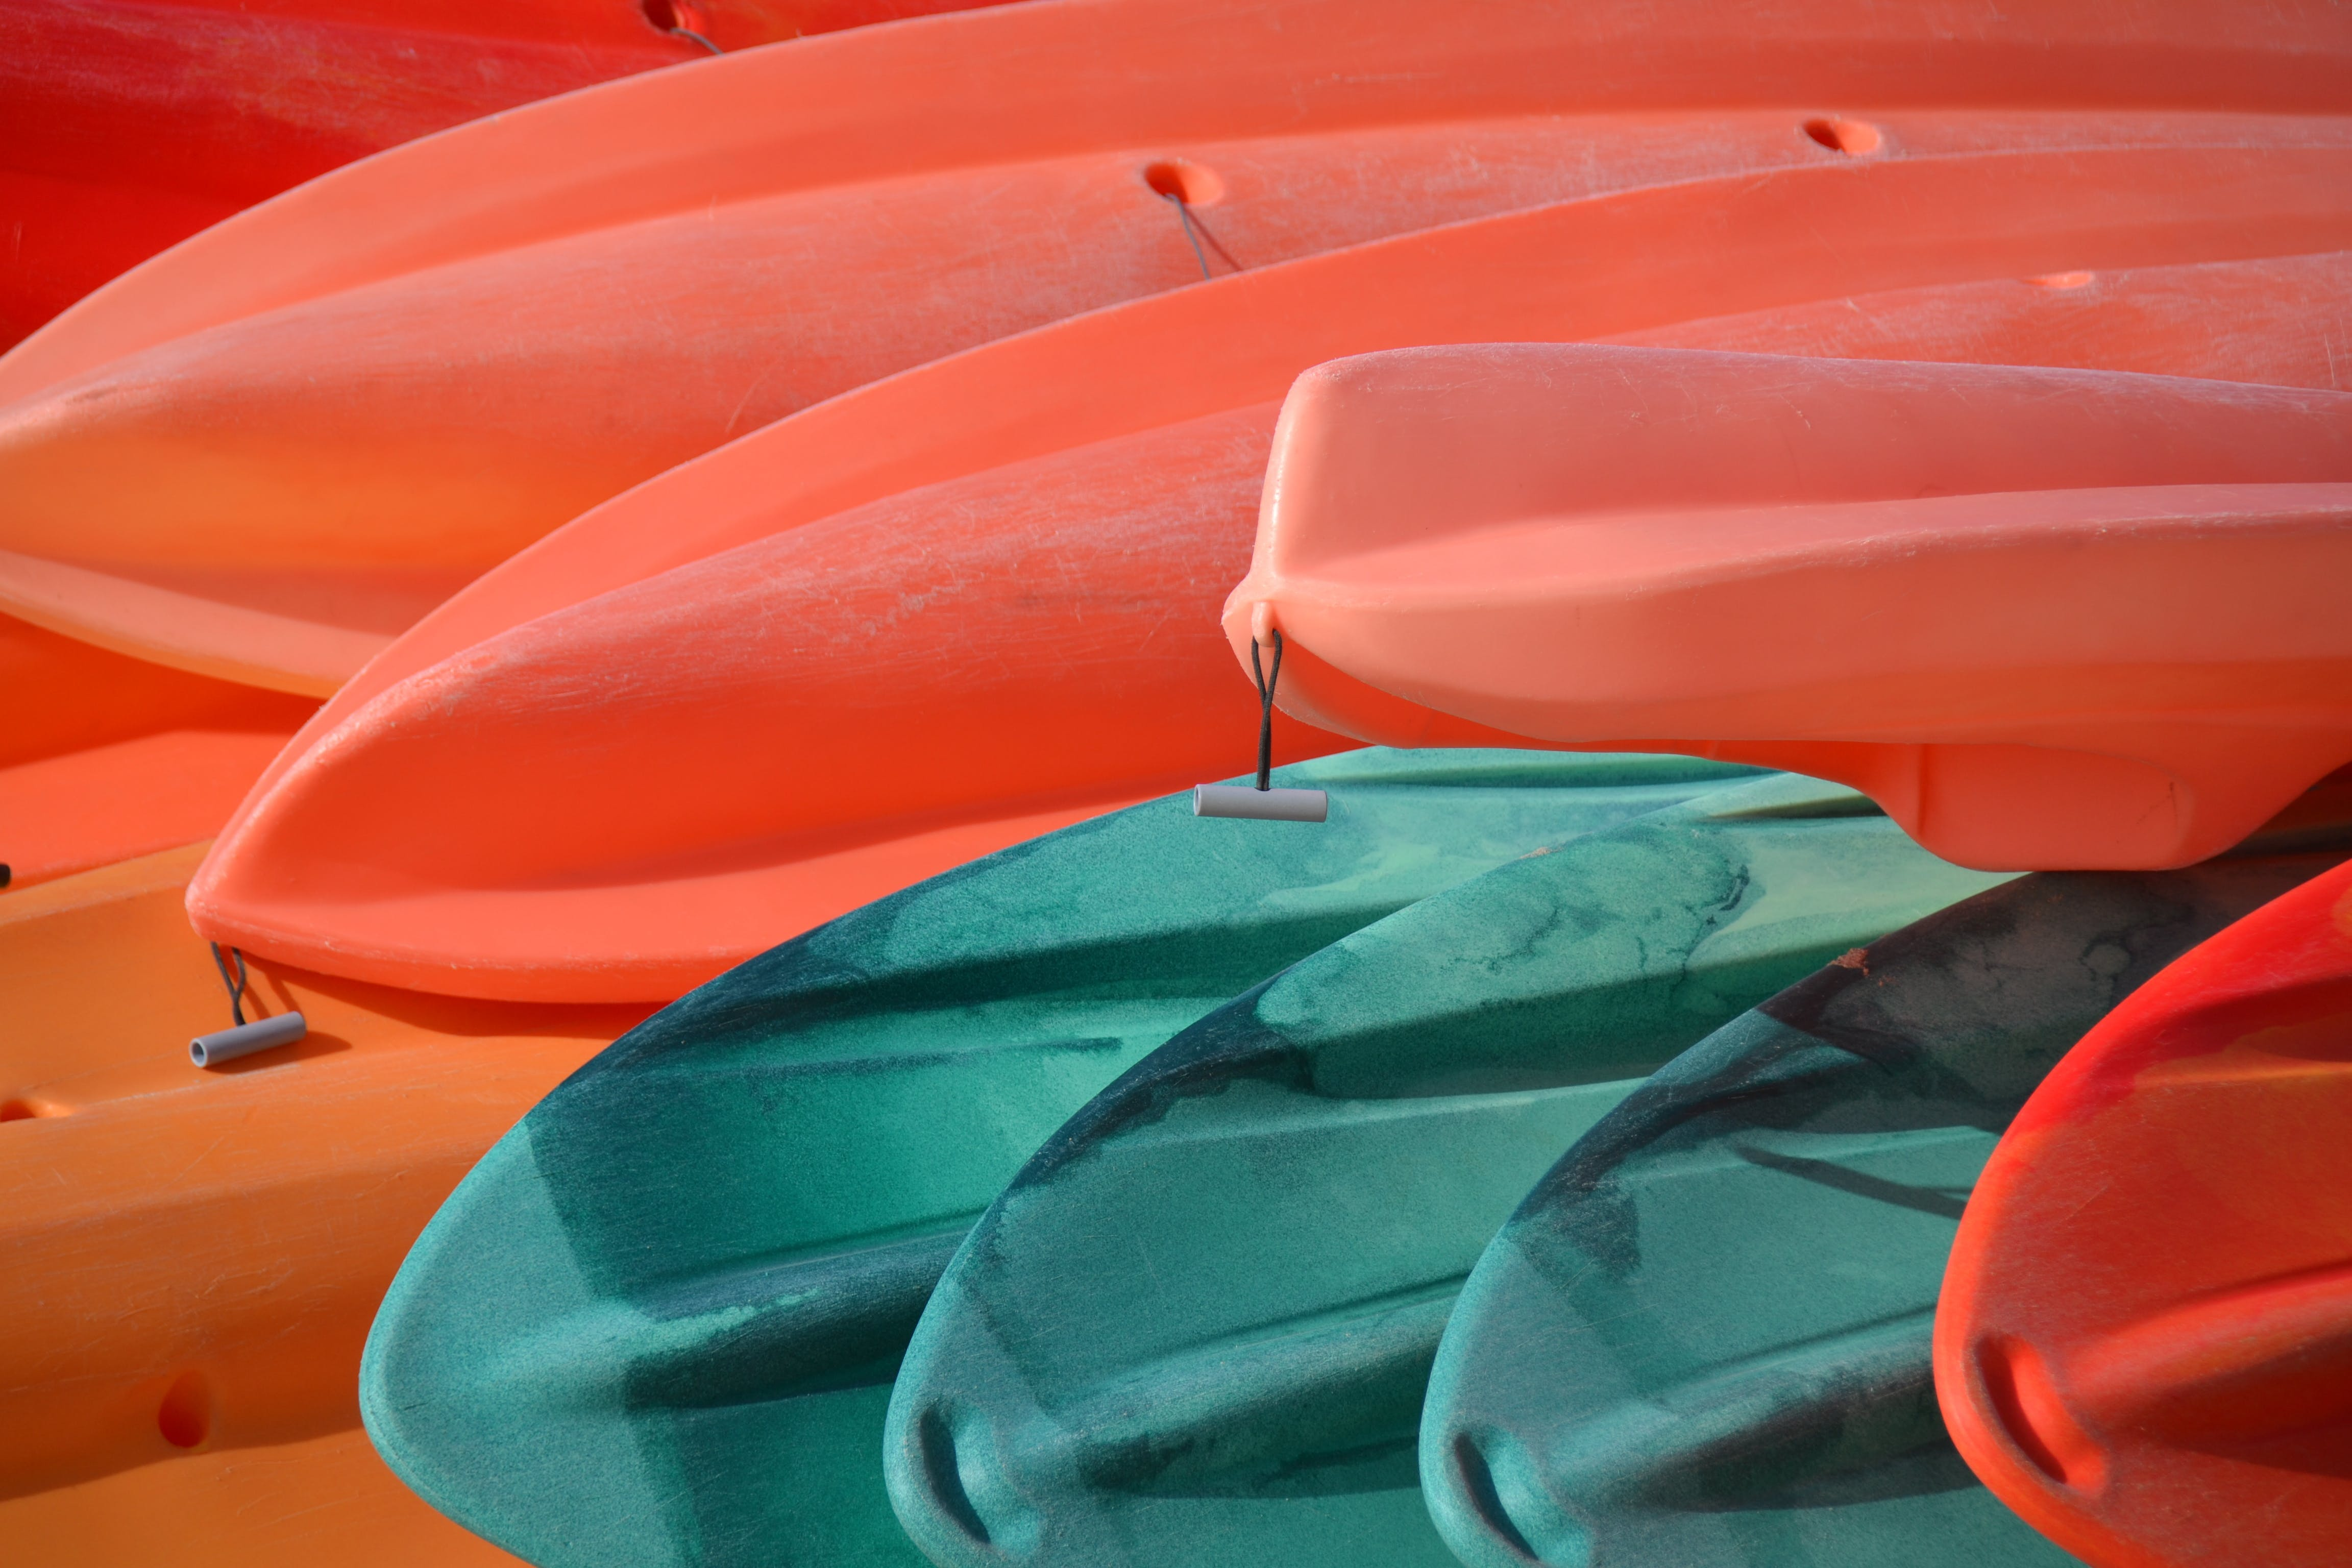 Red-and-teal Surfboard Lot